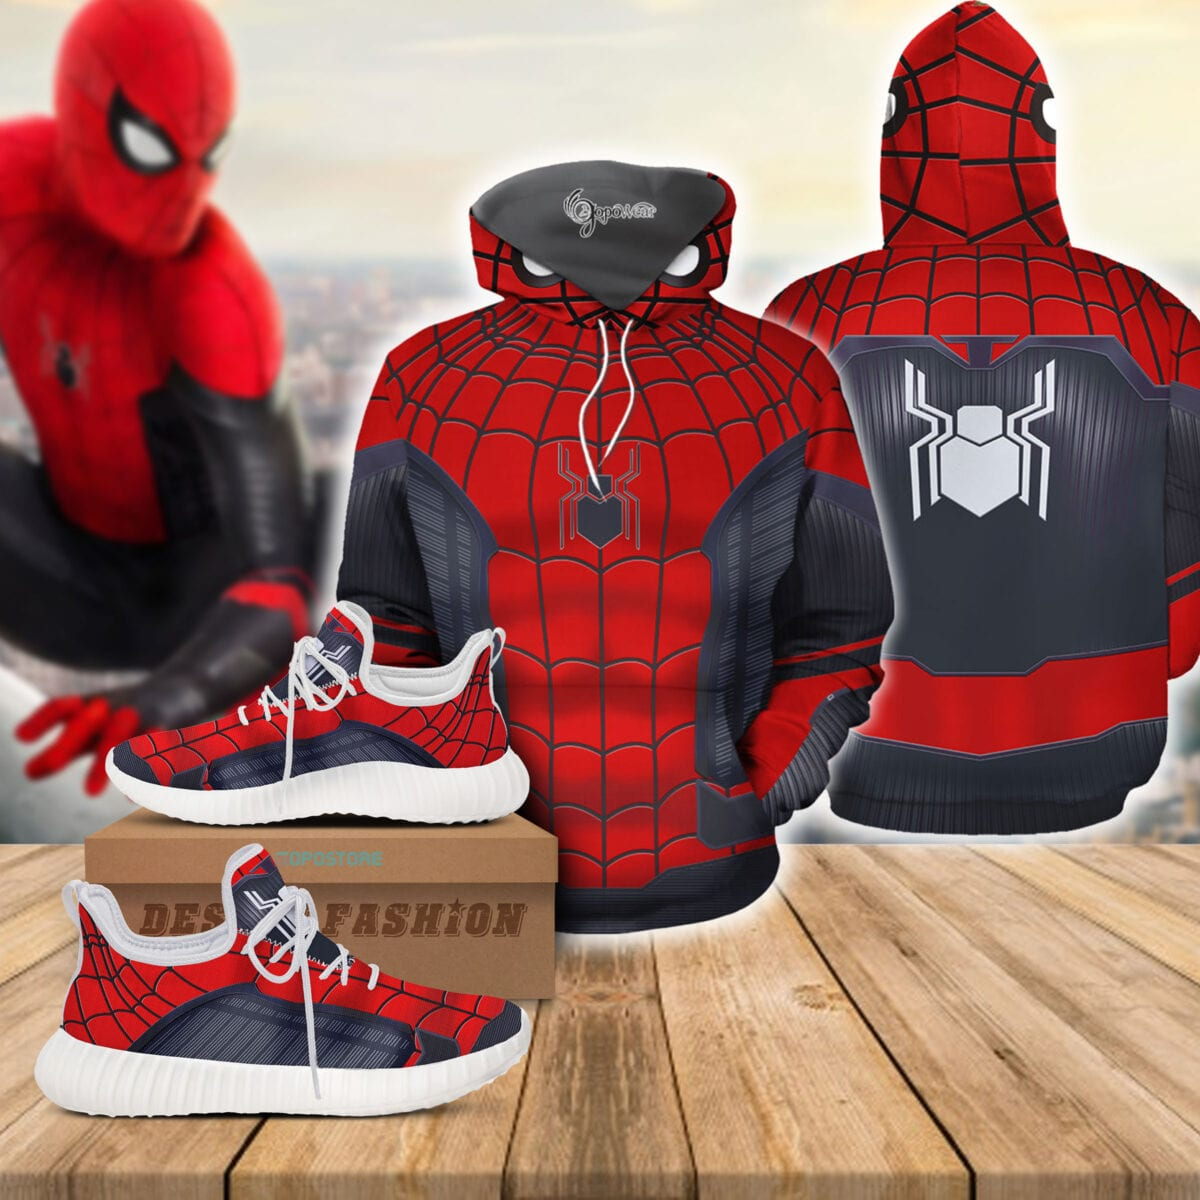 Spider Suit 3D All Over Printed Hoodie Reze Shoes Bundle 1